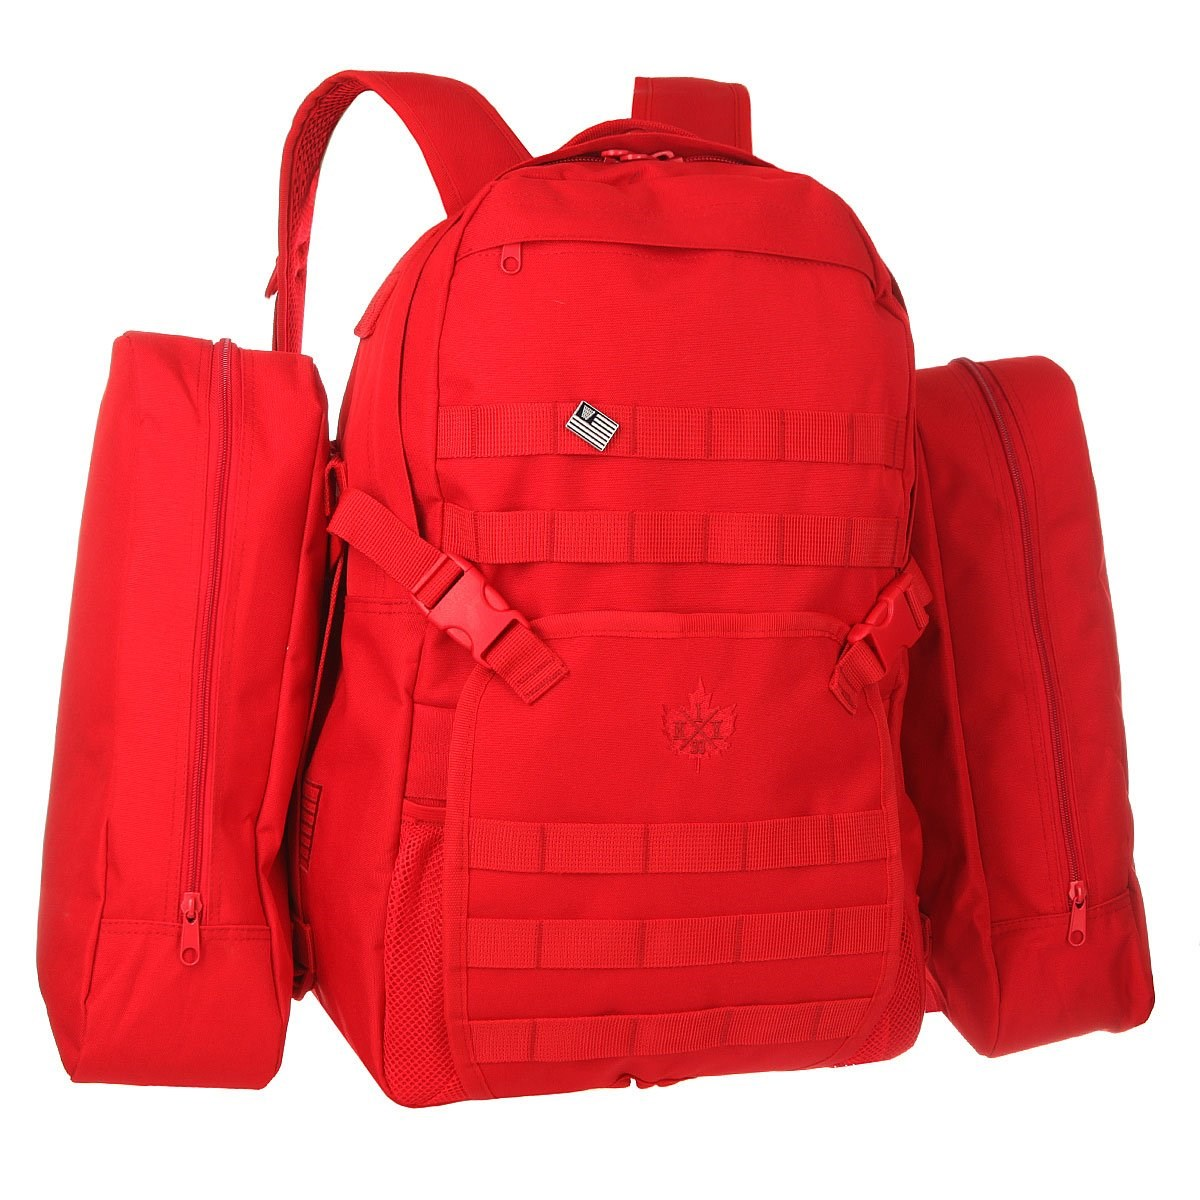 Рюкзак K1X RED On mission back pack